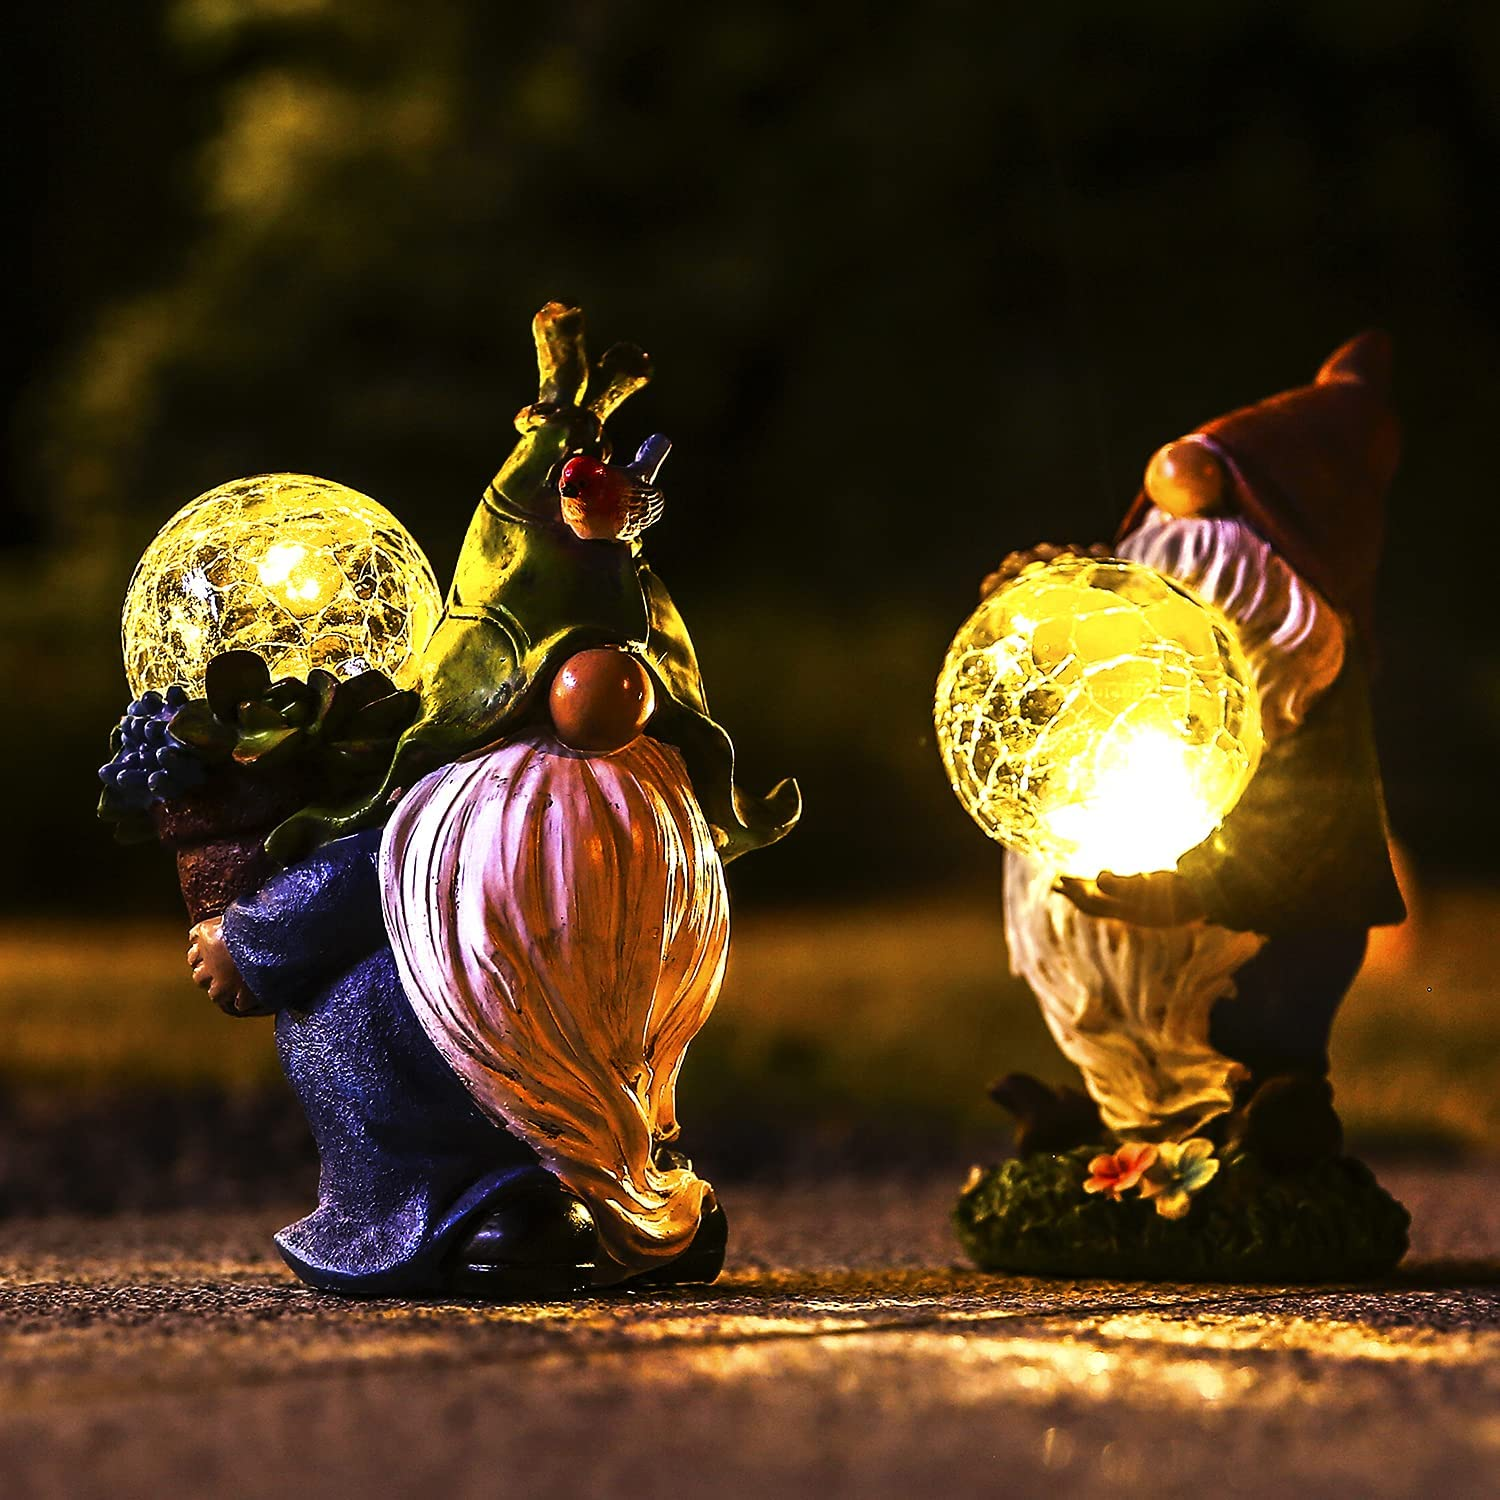 Garden Gnome Statue Outdoor Decor - 2 Pack Resin Gnome Figurine with Solar Lights Waterproof Outside Yard Decorations for Patio, Yard, Lawn, Ornament Gift